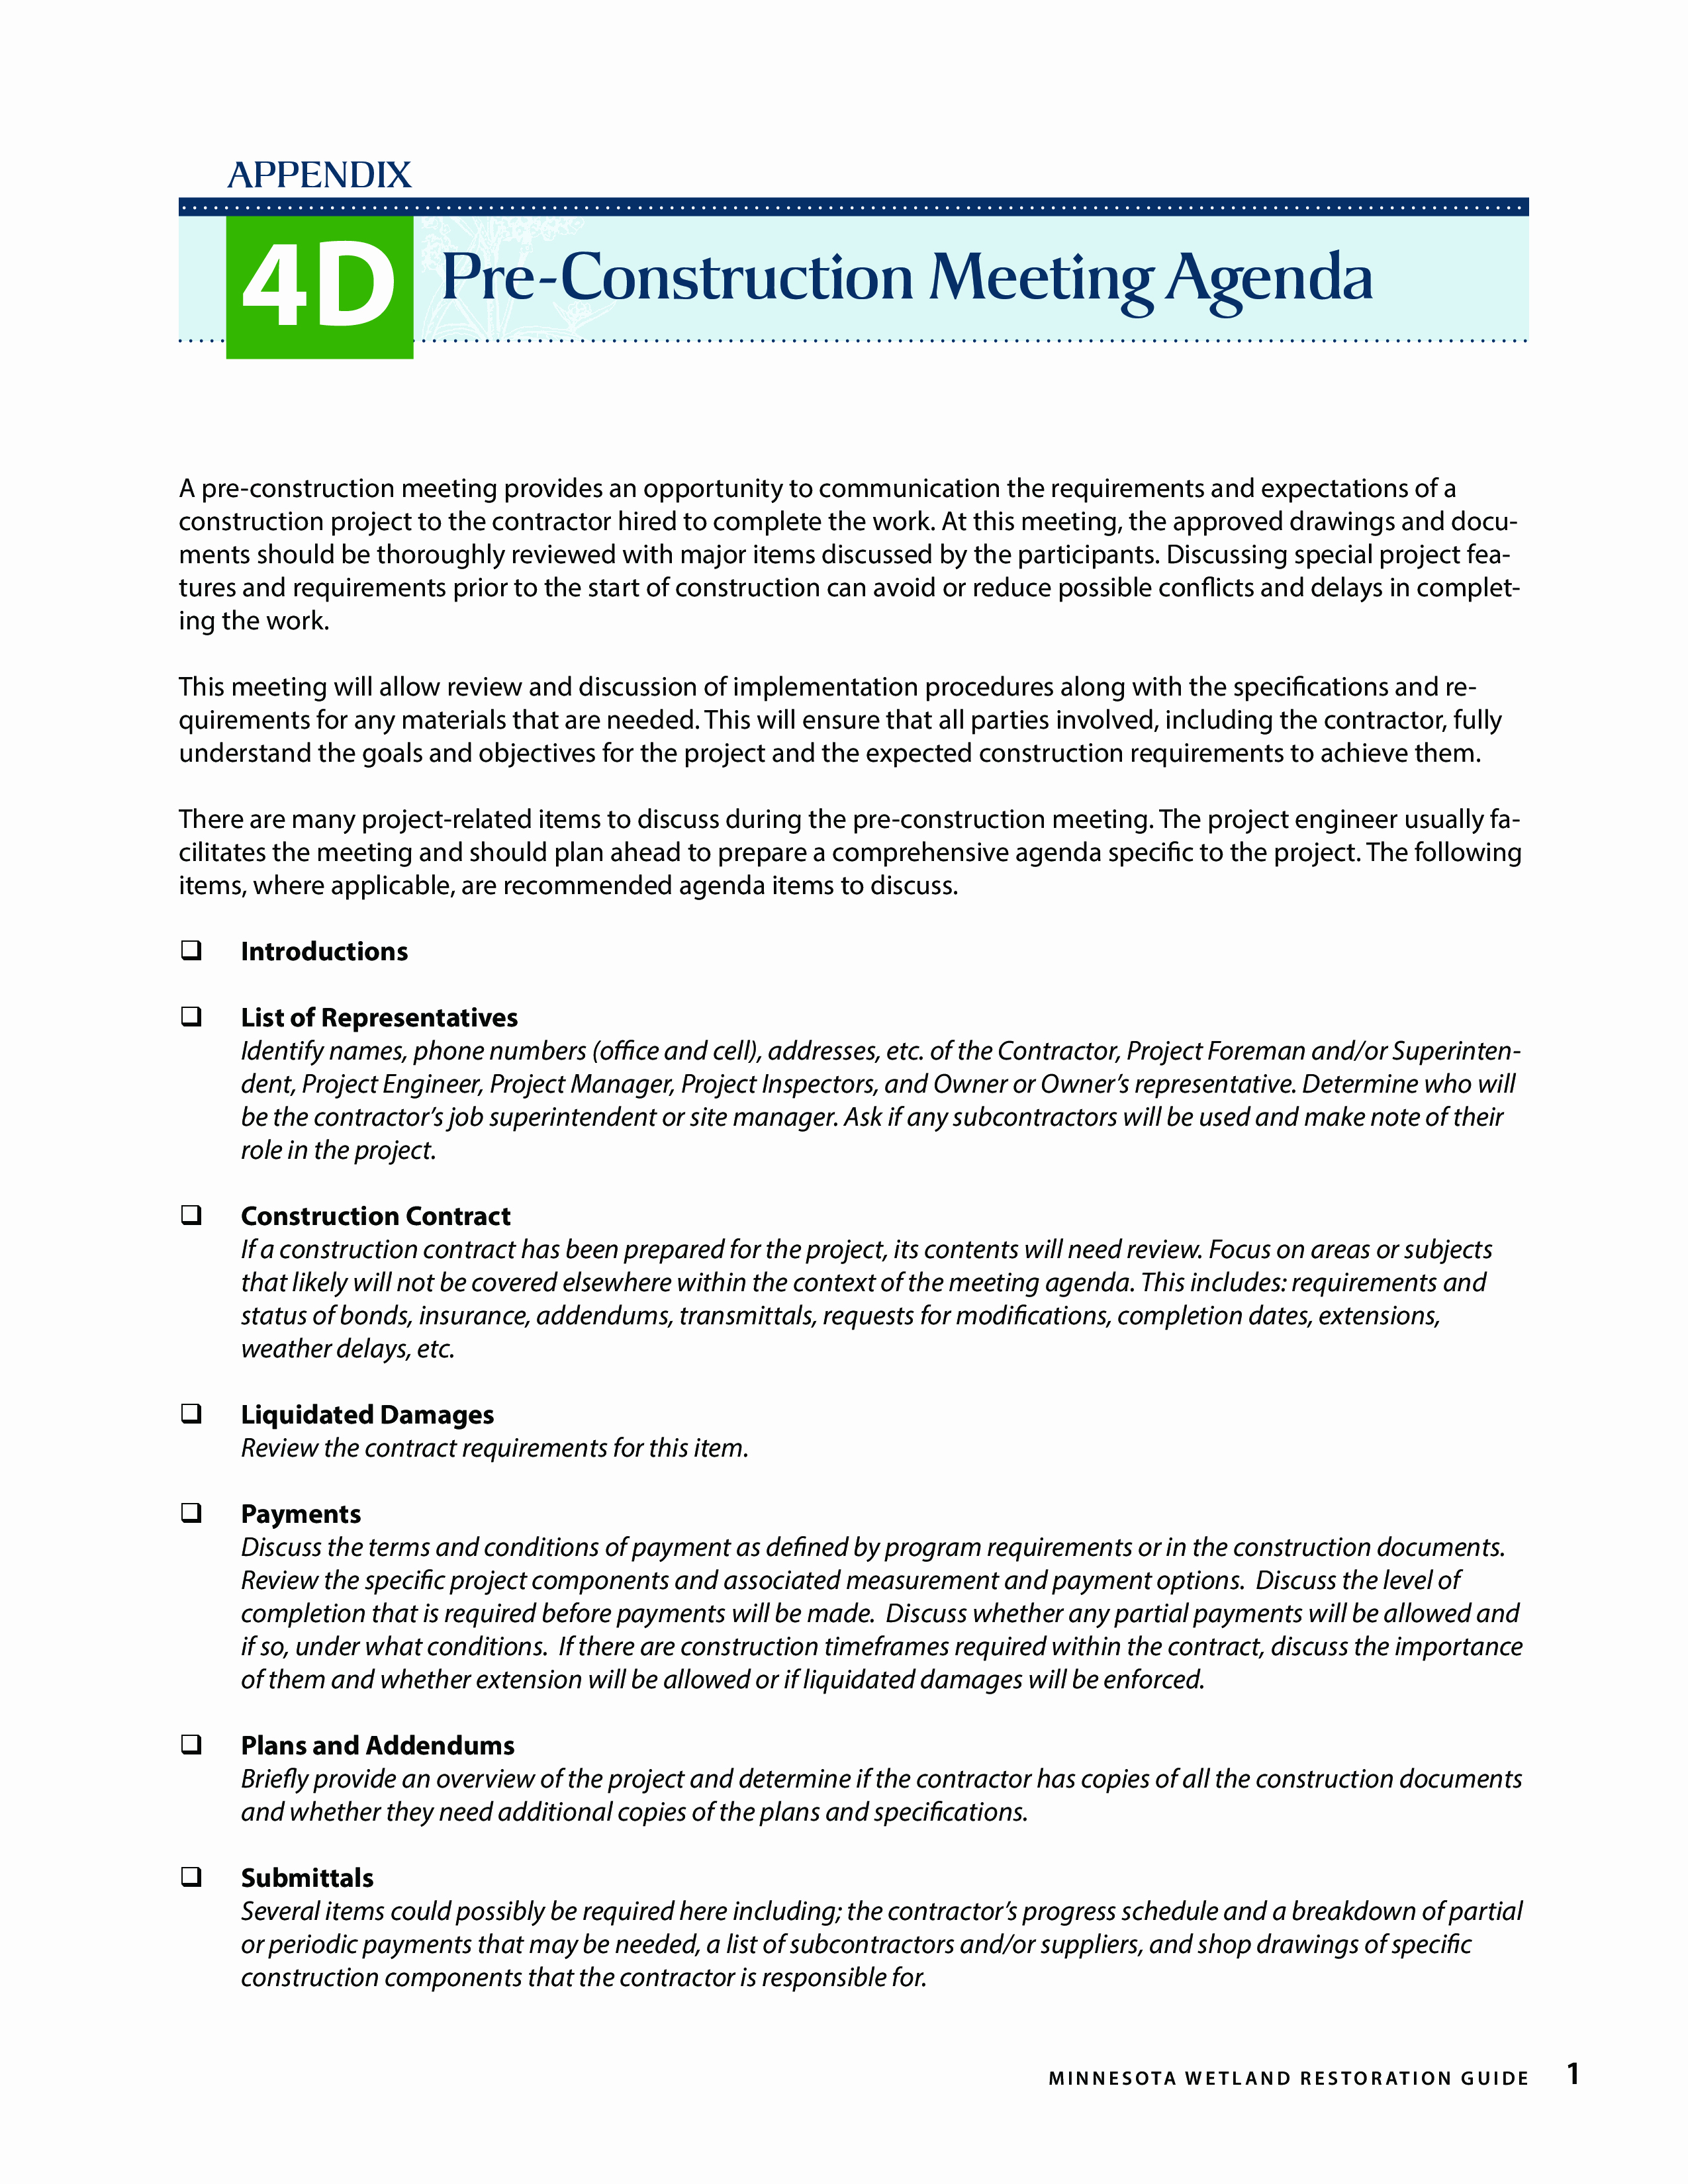 Construction Meeting Agenda Template Fresh Pre Construction Meeting Agenda